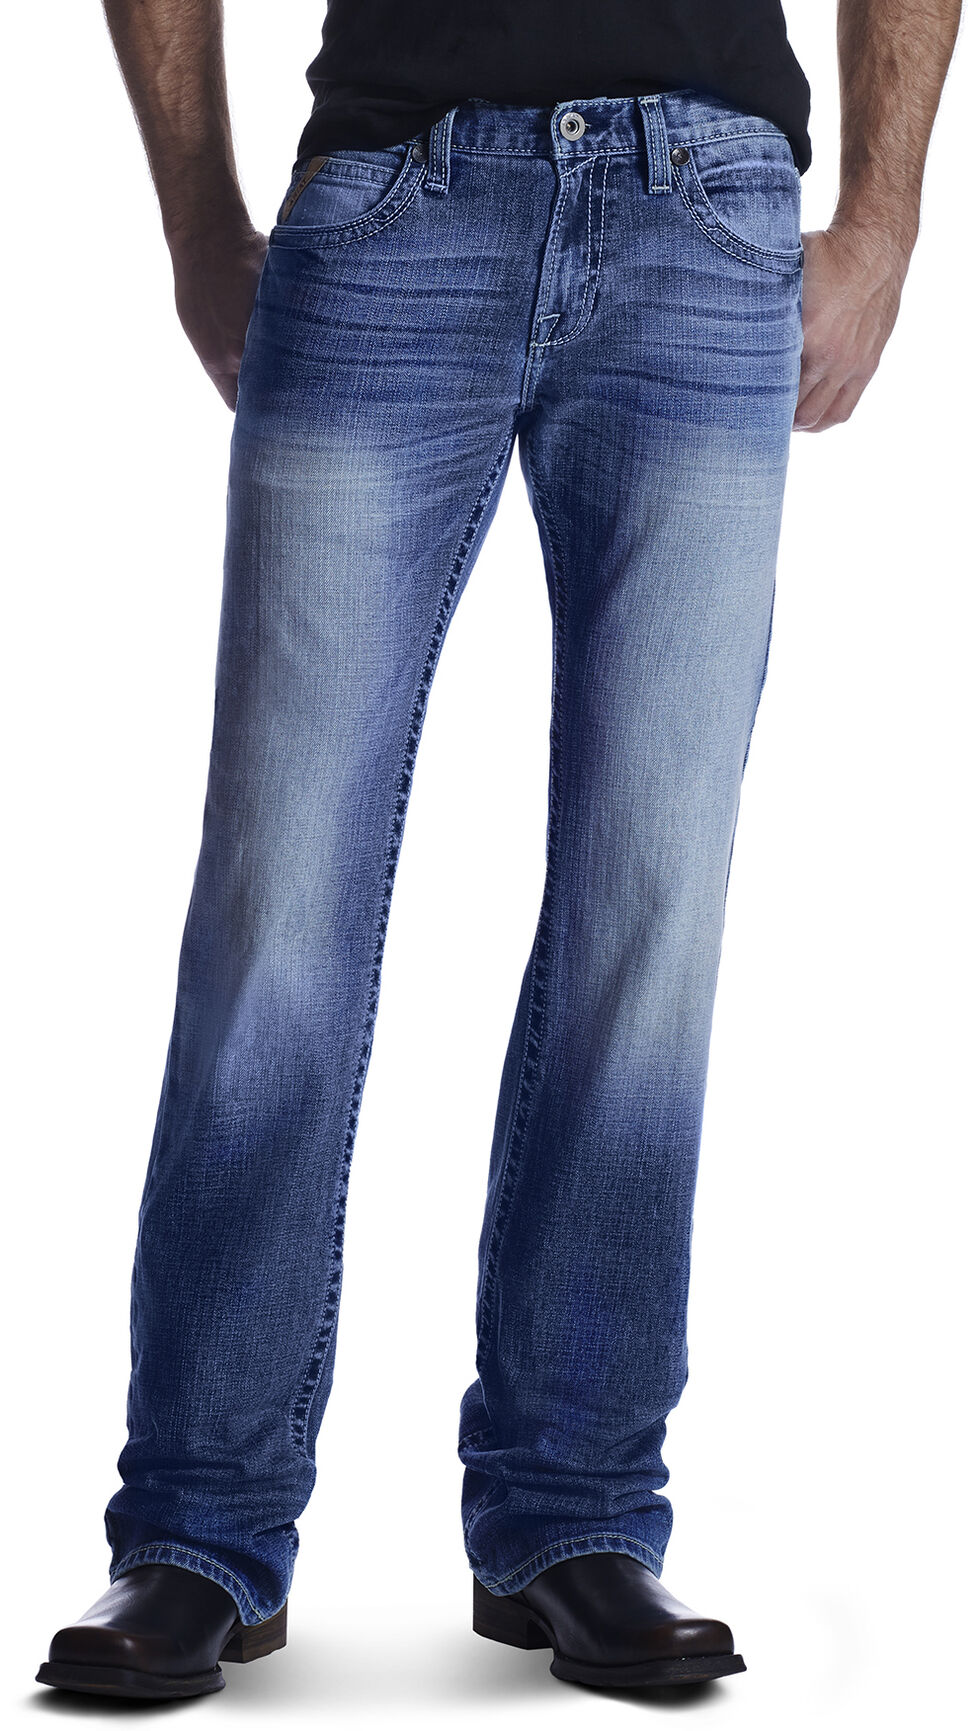 Ariat Men's M7 Rocker Shotwell Cinder Boot Cut Jeans, Med Blue, hi-res